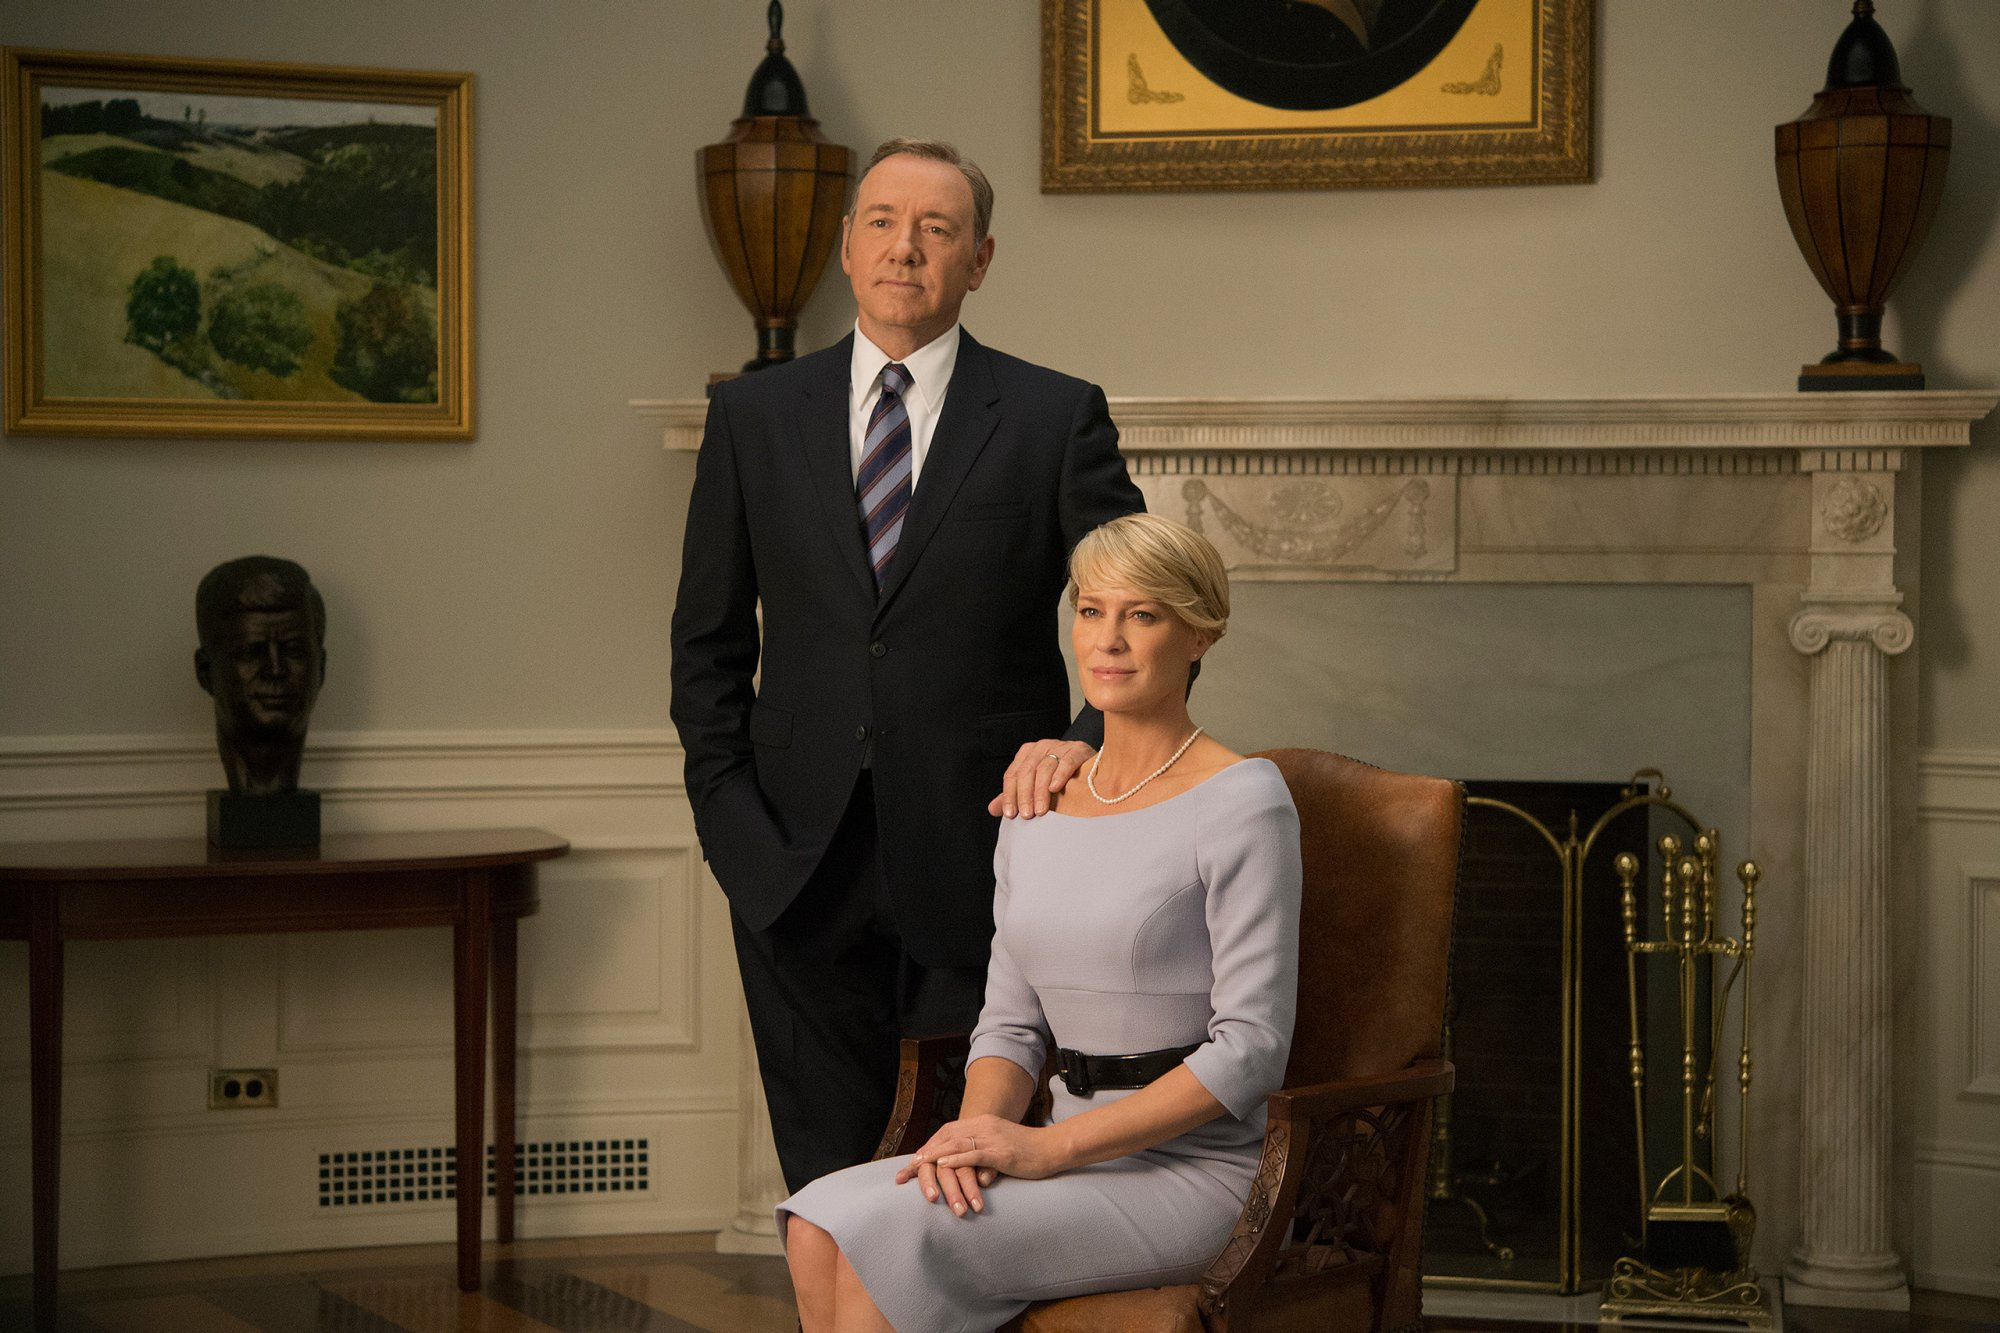 Shes the first female president and her enemies have multiplied But Claire Underwood wont be undermined and she will not back down House of Cards